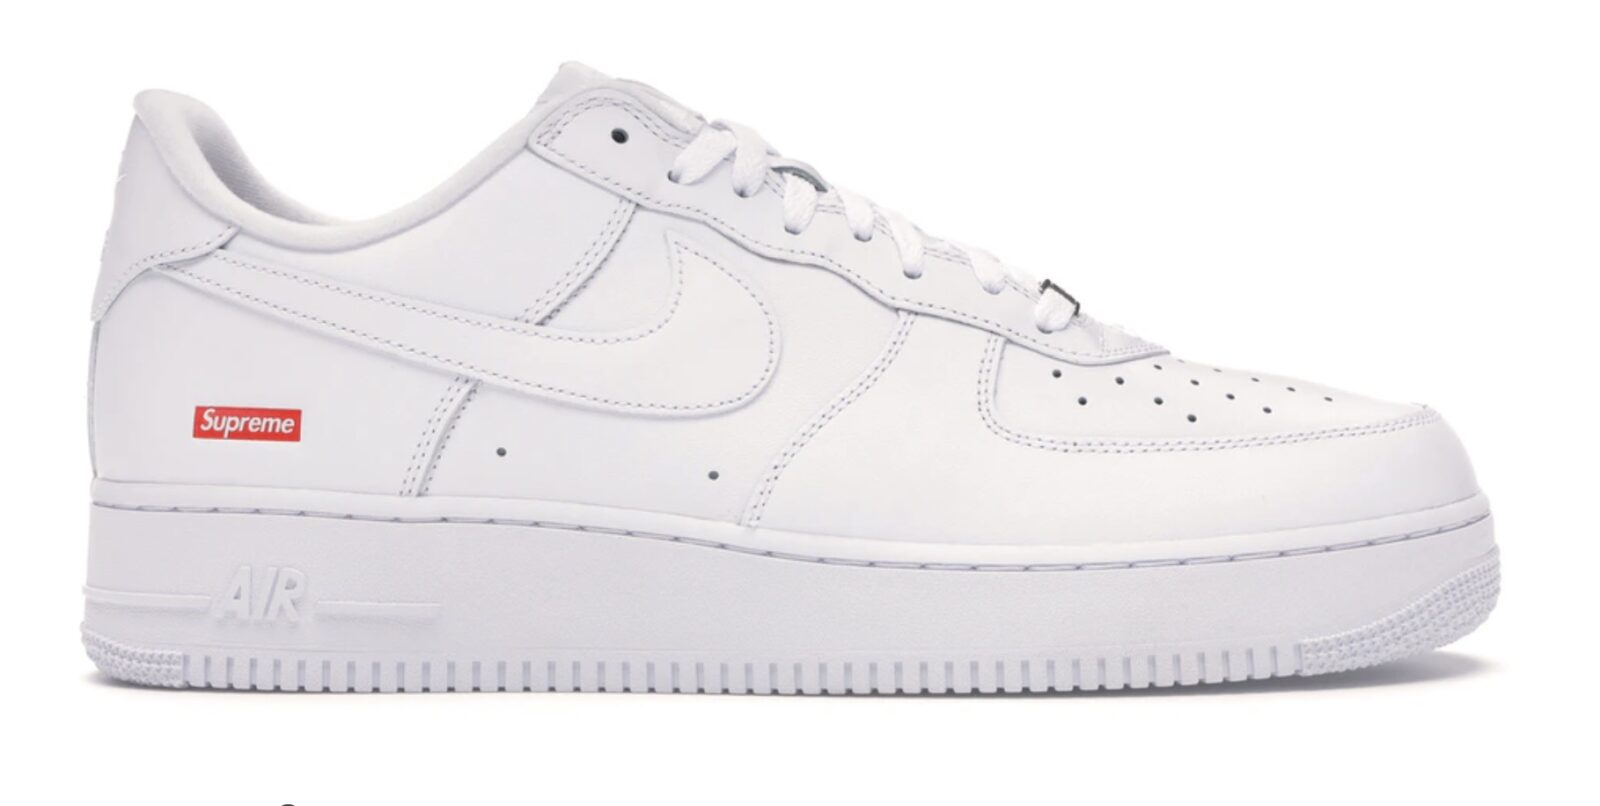 Supreme x Nike Air Force 1 White